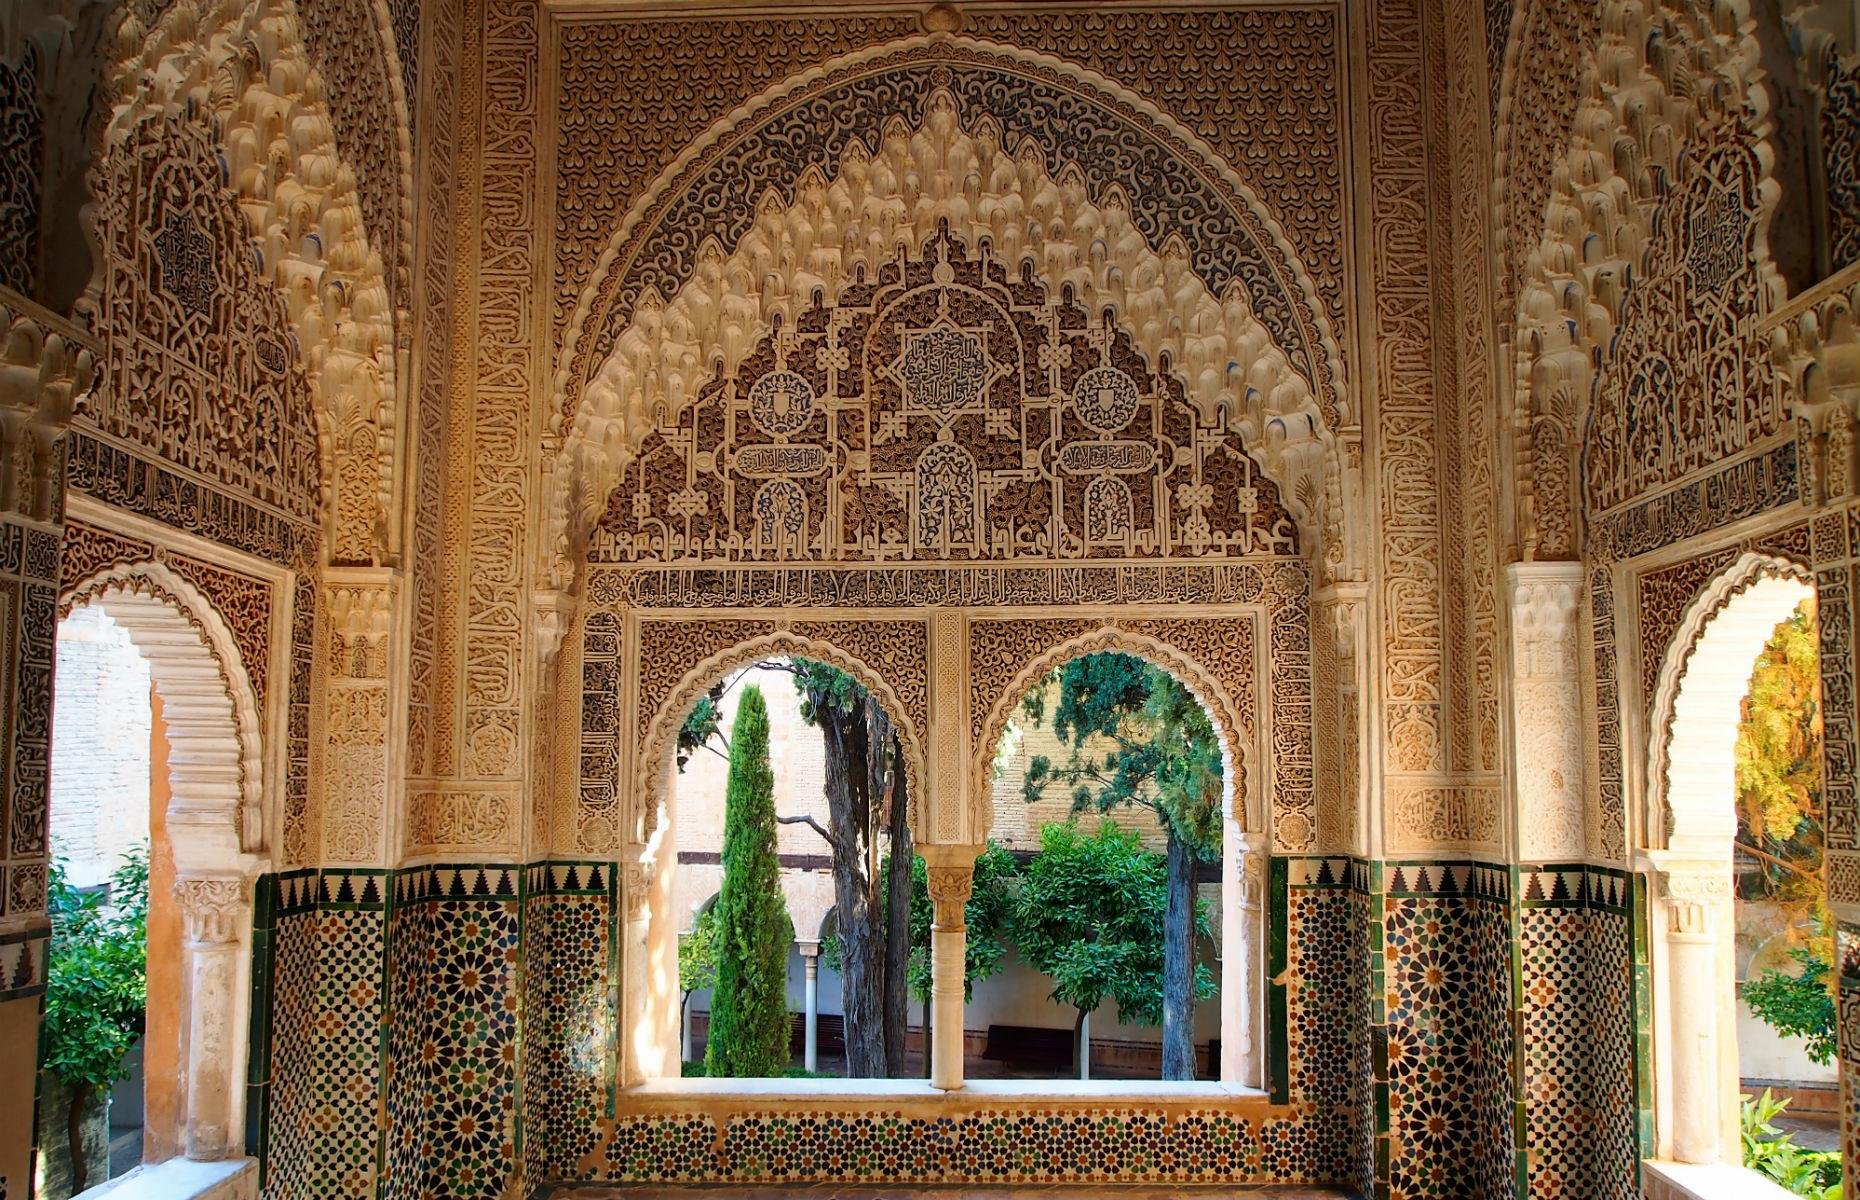 Slide 33 of 61: The Alhambra's buildings are elaborately decorated from floor-to-ceiling, and it's easy to imagine Moorish monarchs wandering through the airy corridors and stunning grounds. Its beauty has inspired many works of literature and film, too, including Washington Irving's Tales of the Alhambra.